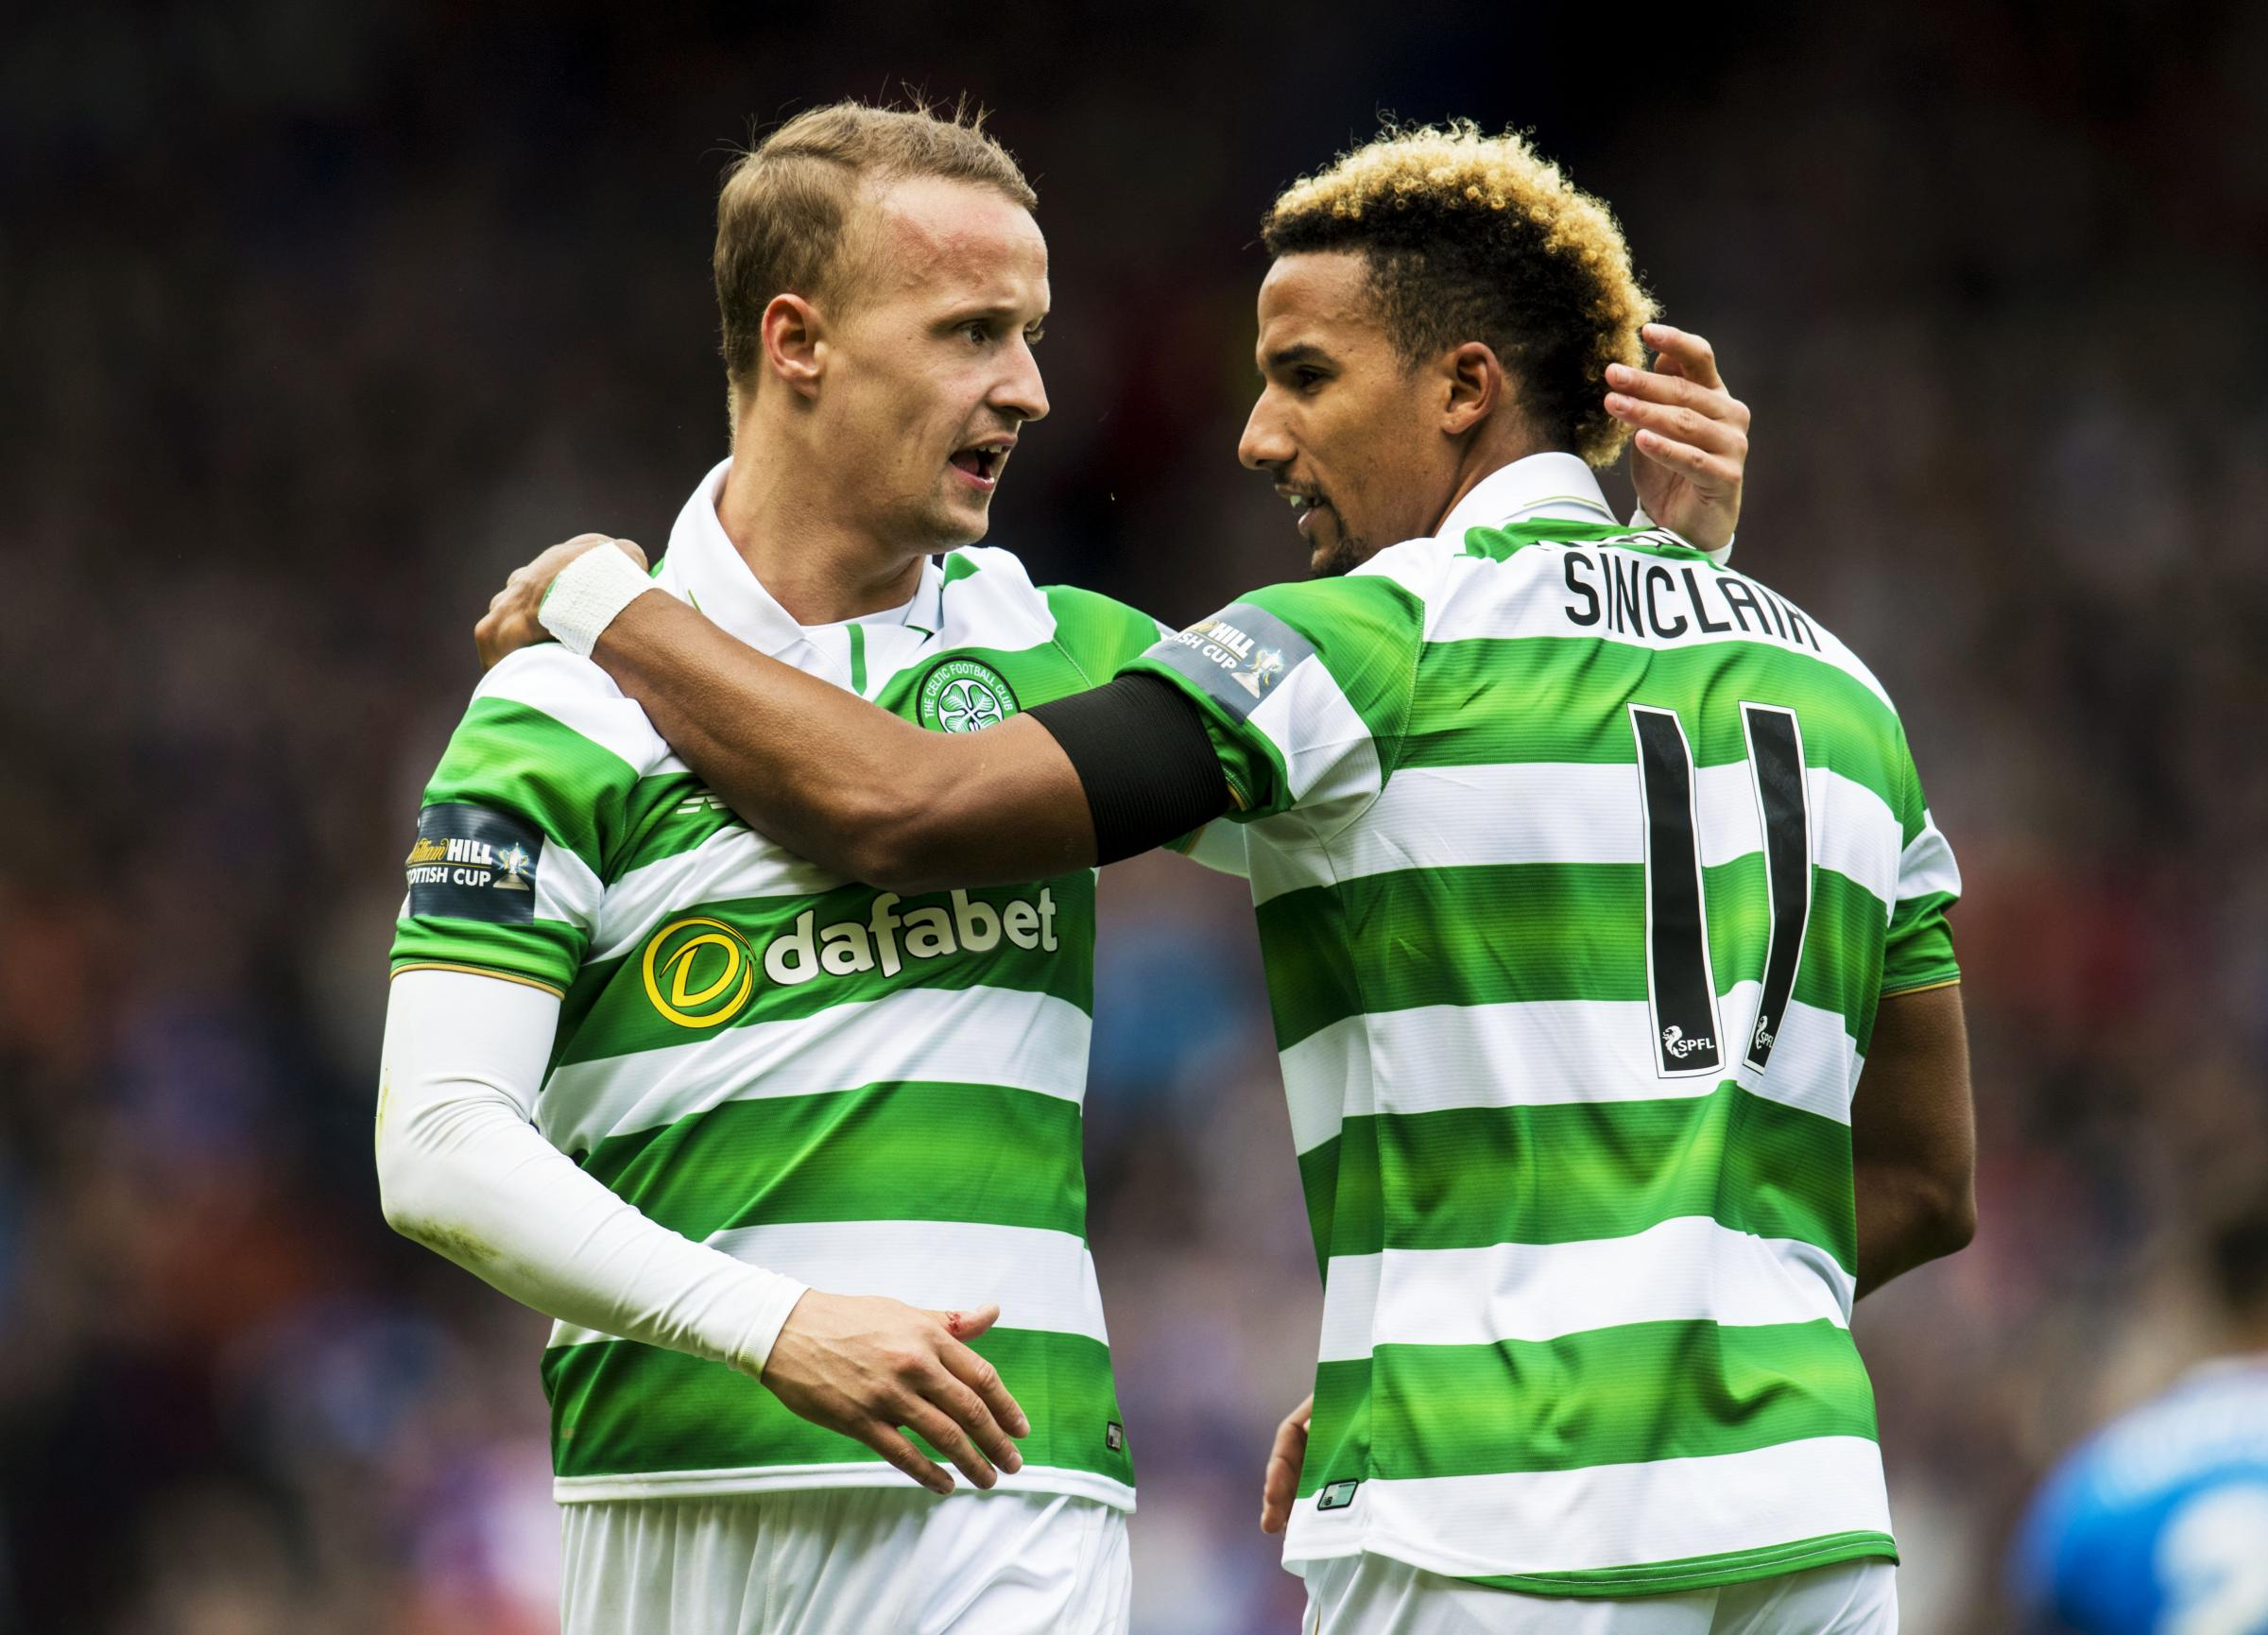 Brendan Rodgers urges Celtic striker Leigh Griffiths to seize his chance during Moussa Dembele's absence